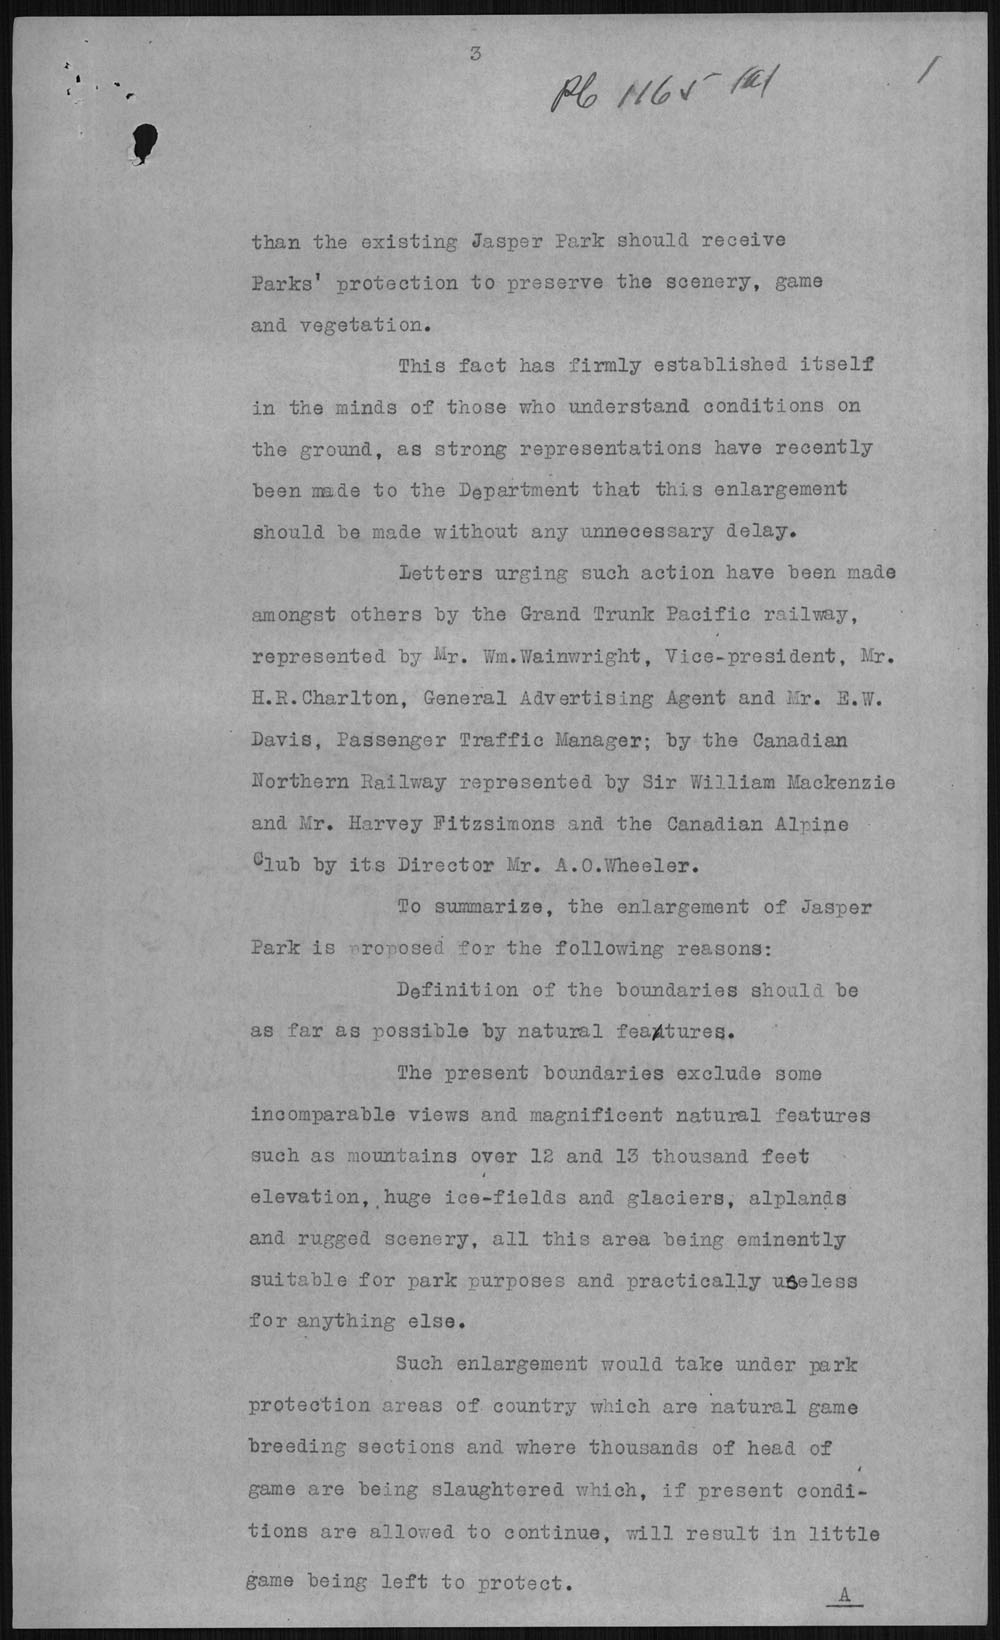 Digitized page of Orders in Council for Image No.: e010877244-v8